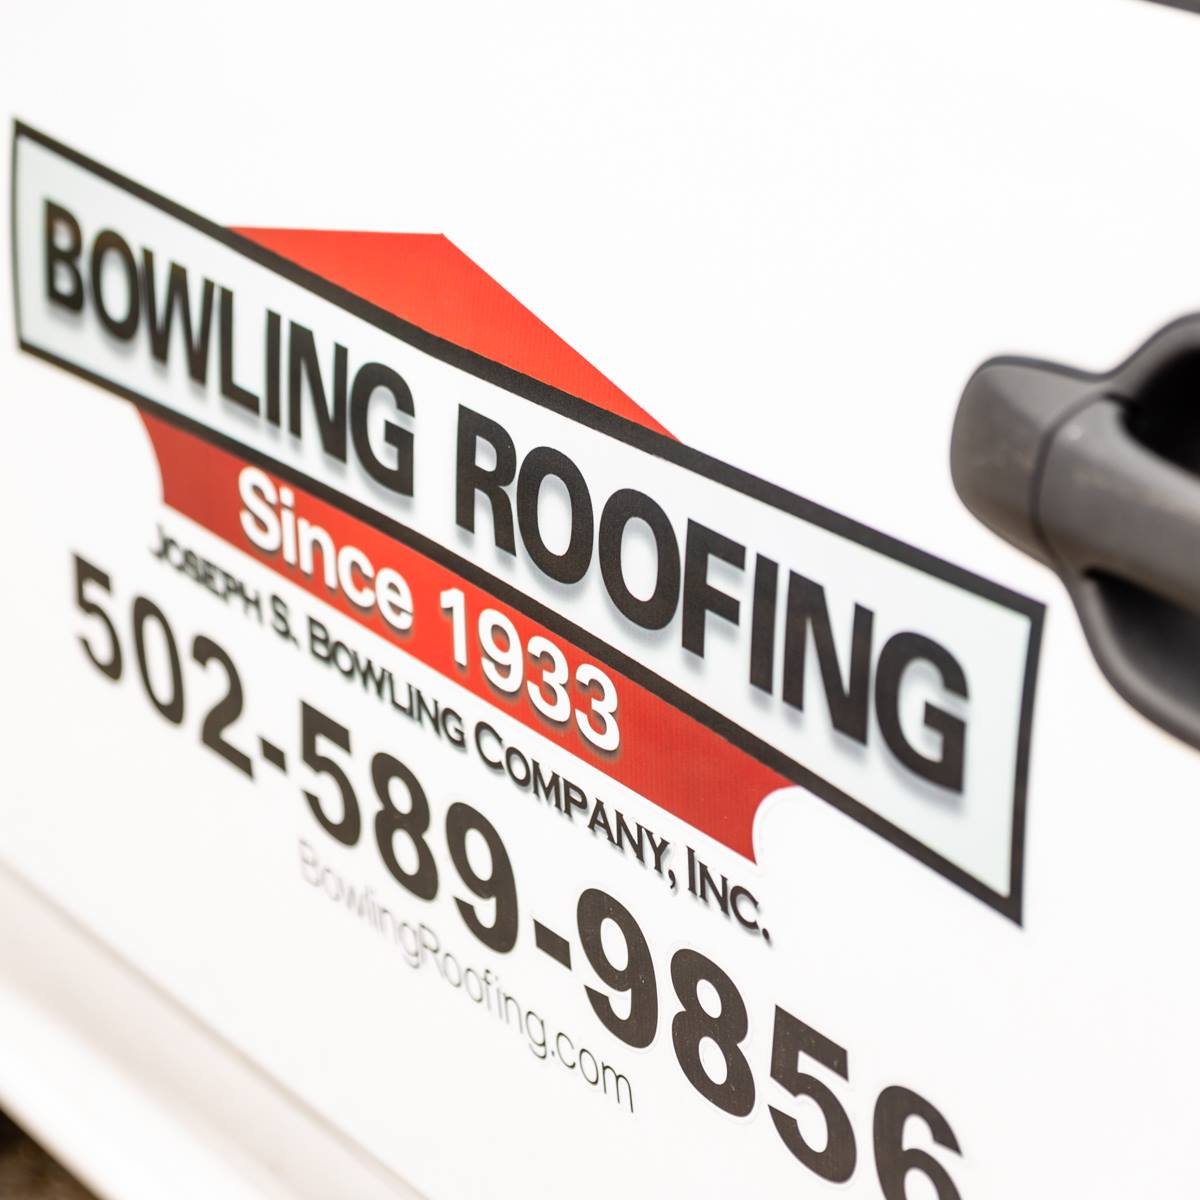 bowling roofing roof images